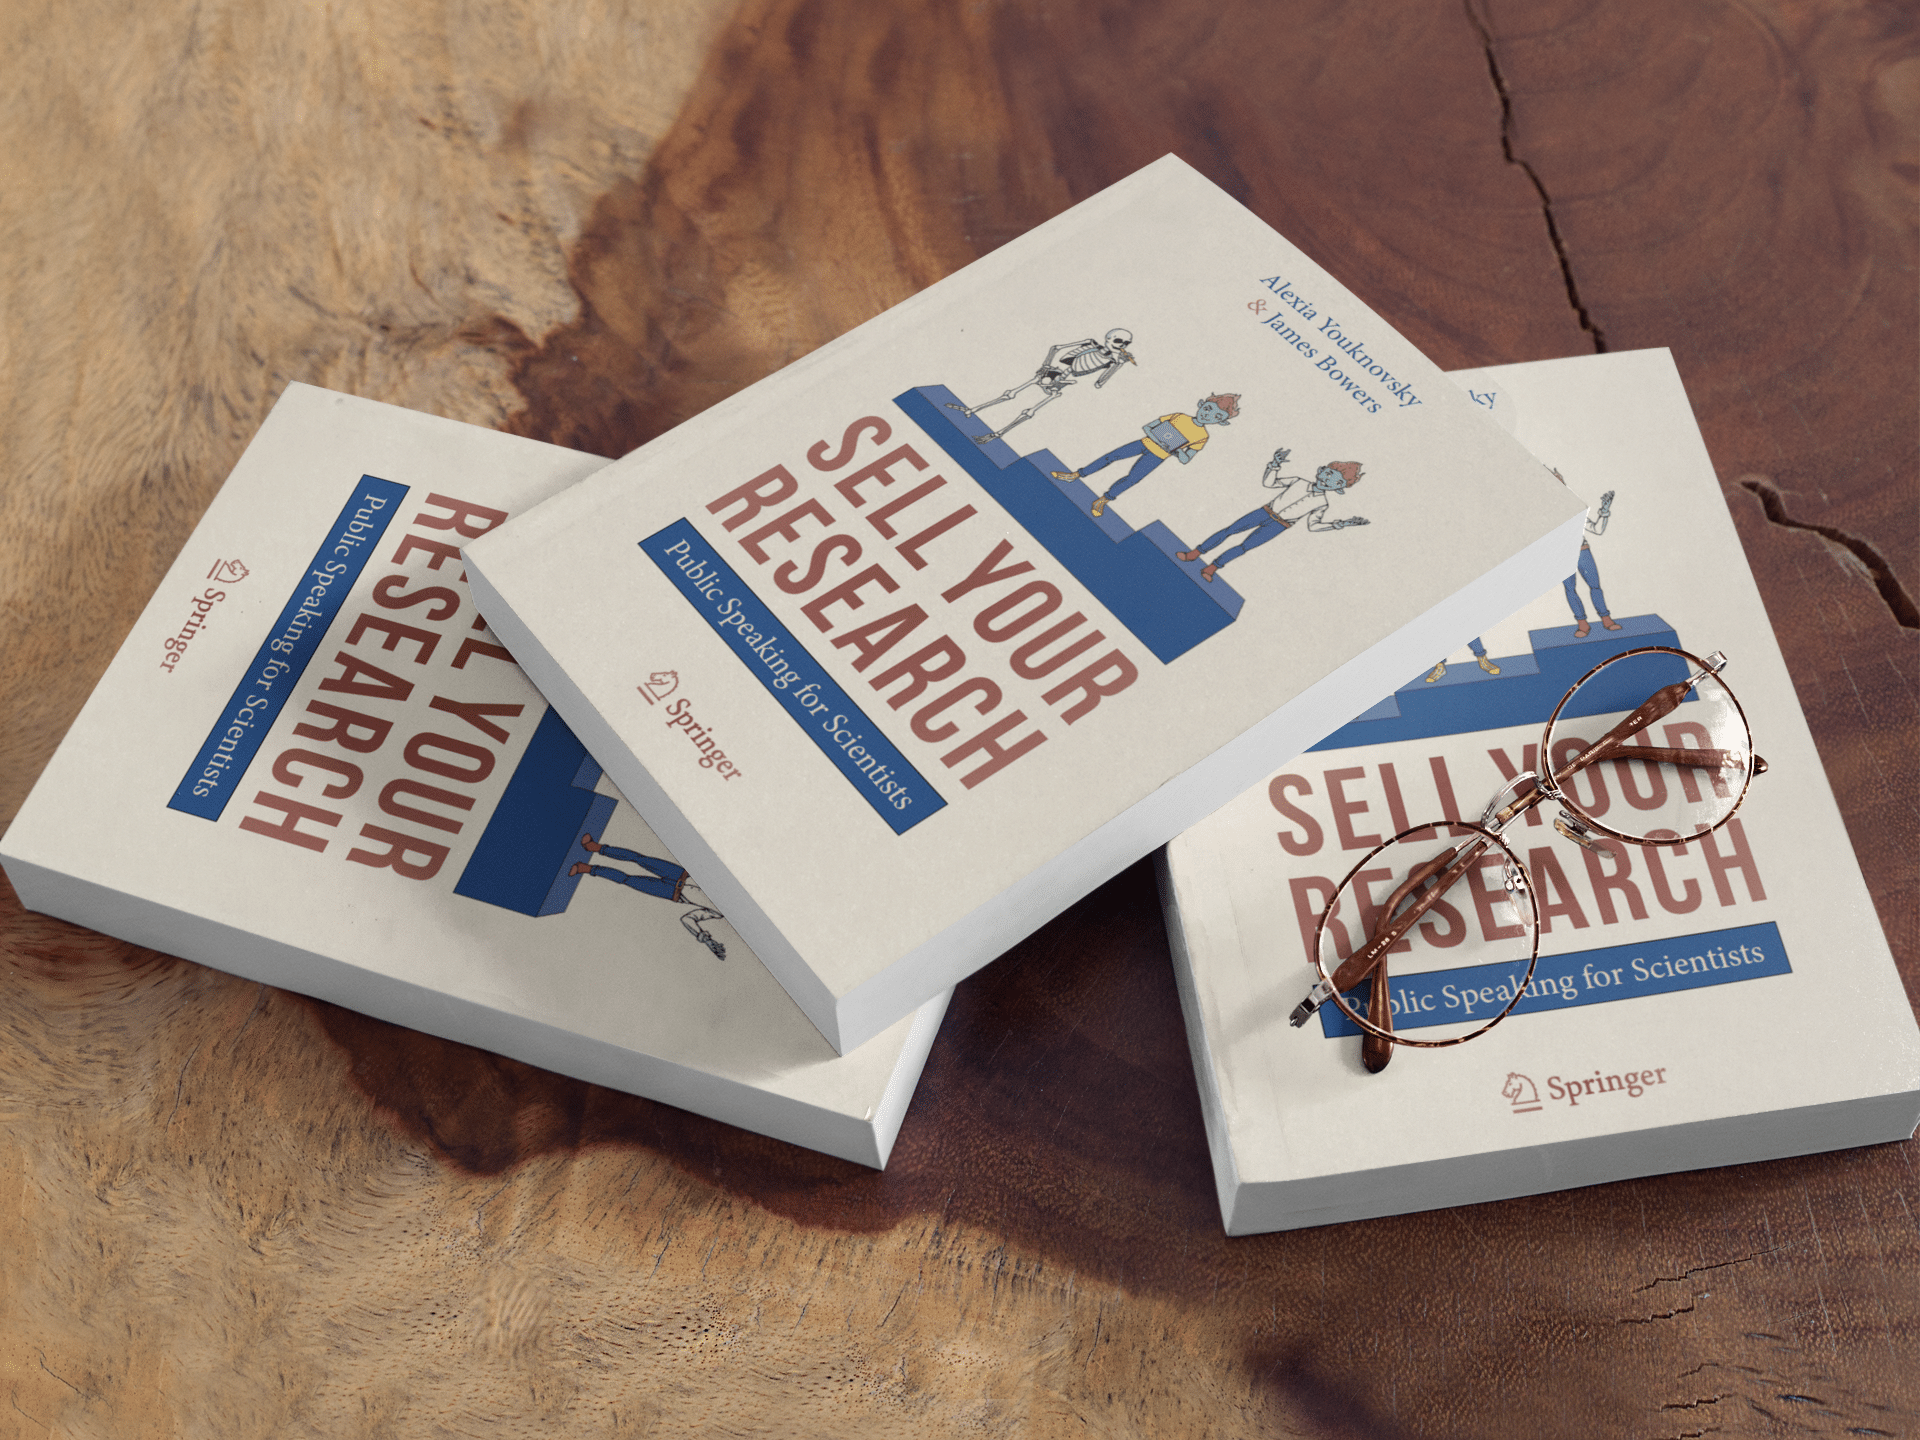 Livre Sell Your Research : Public Speaking for Scientists, guide de prise de parole en public pour les scientifiques